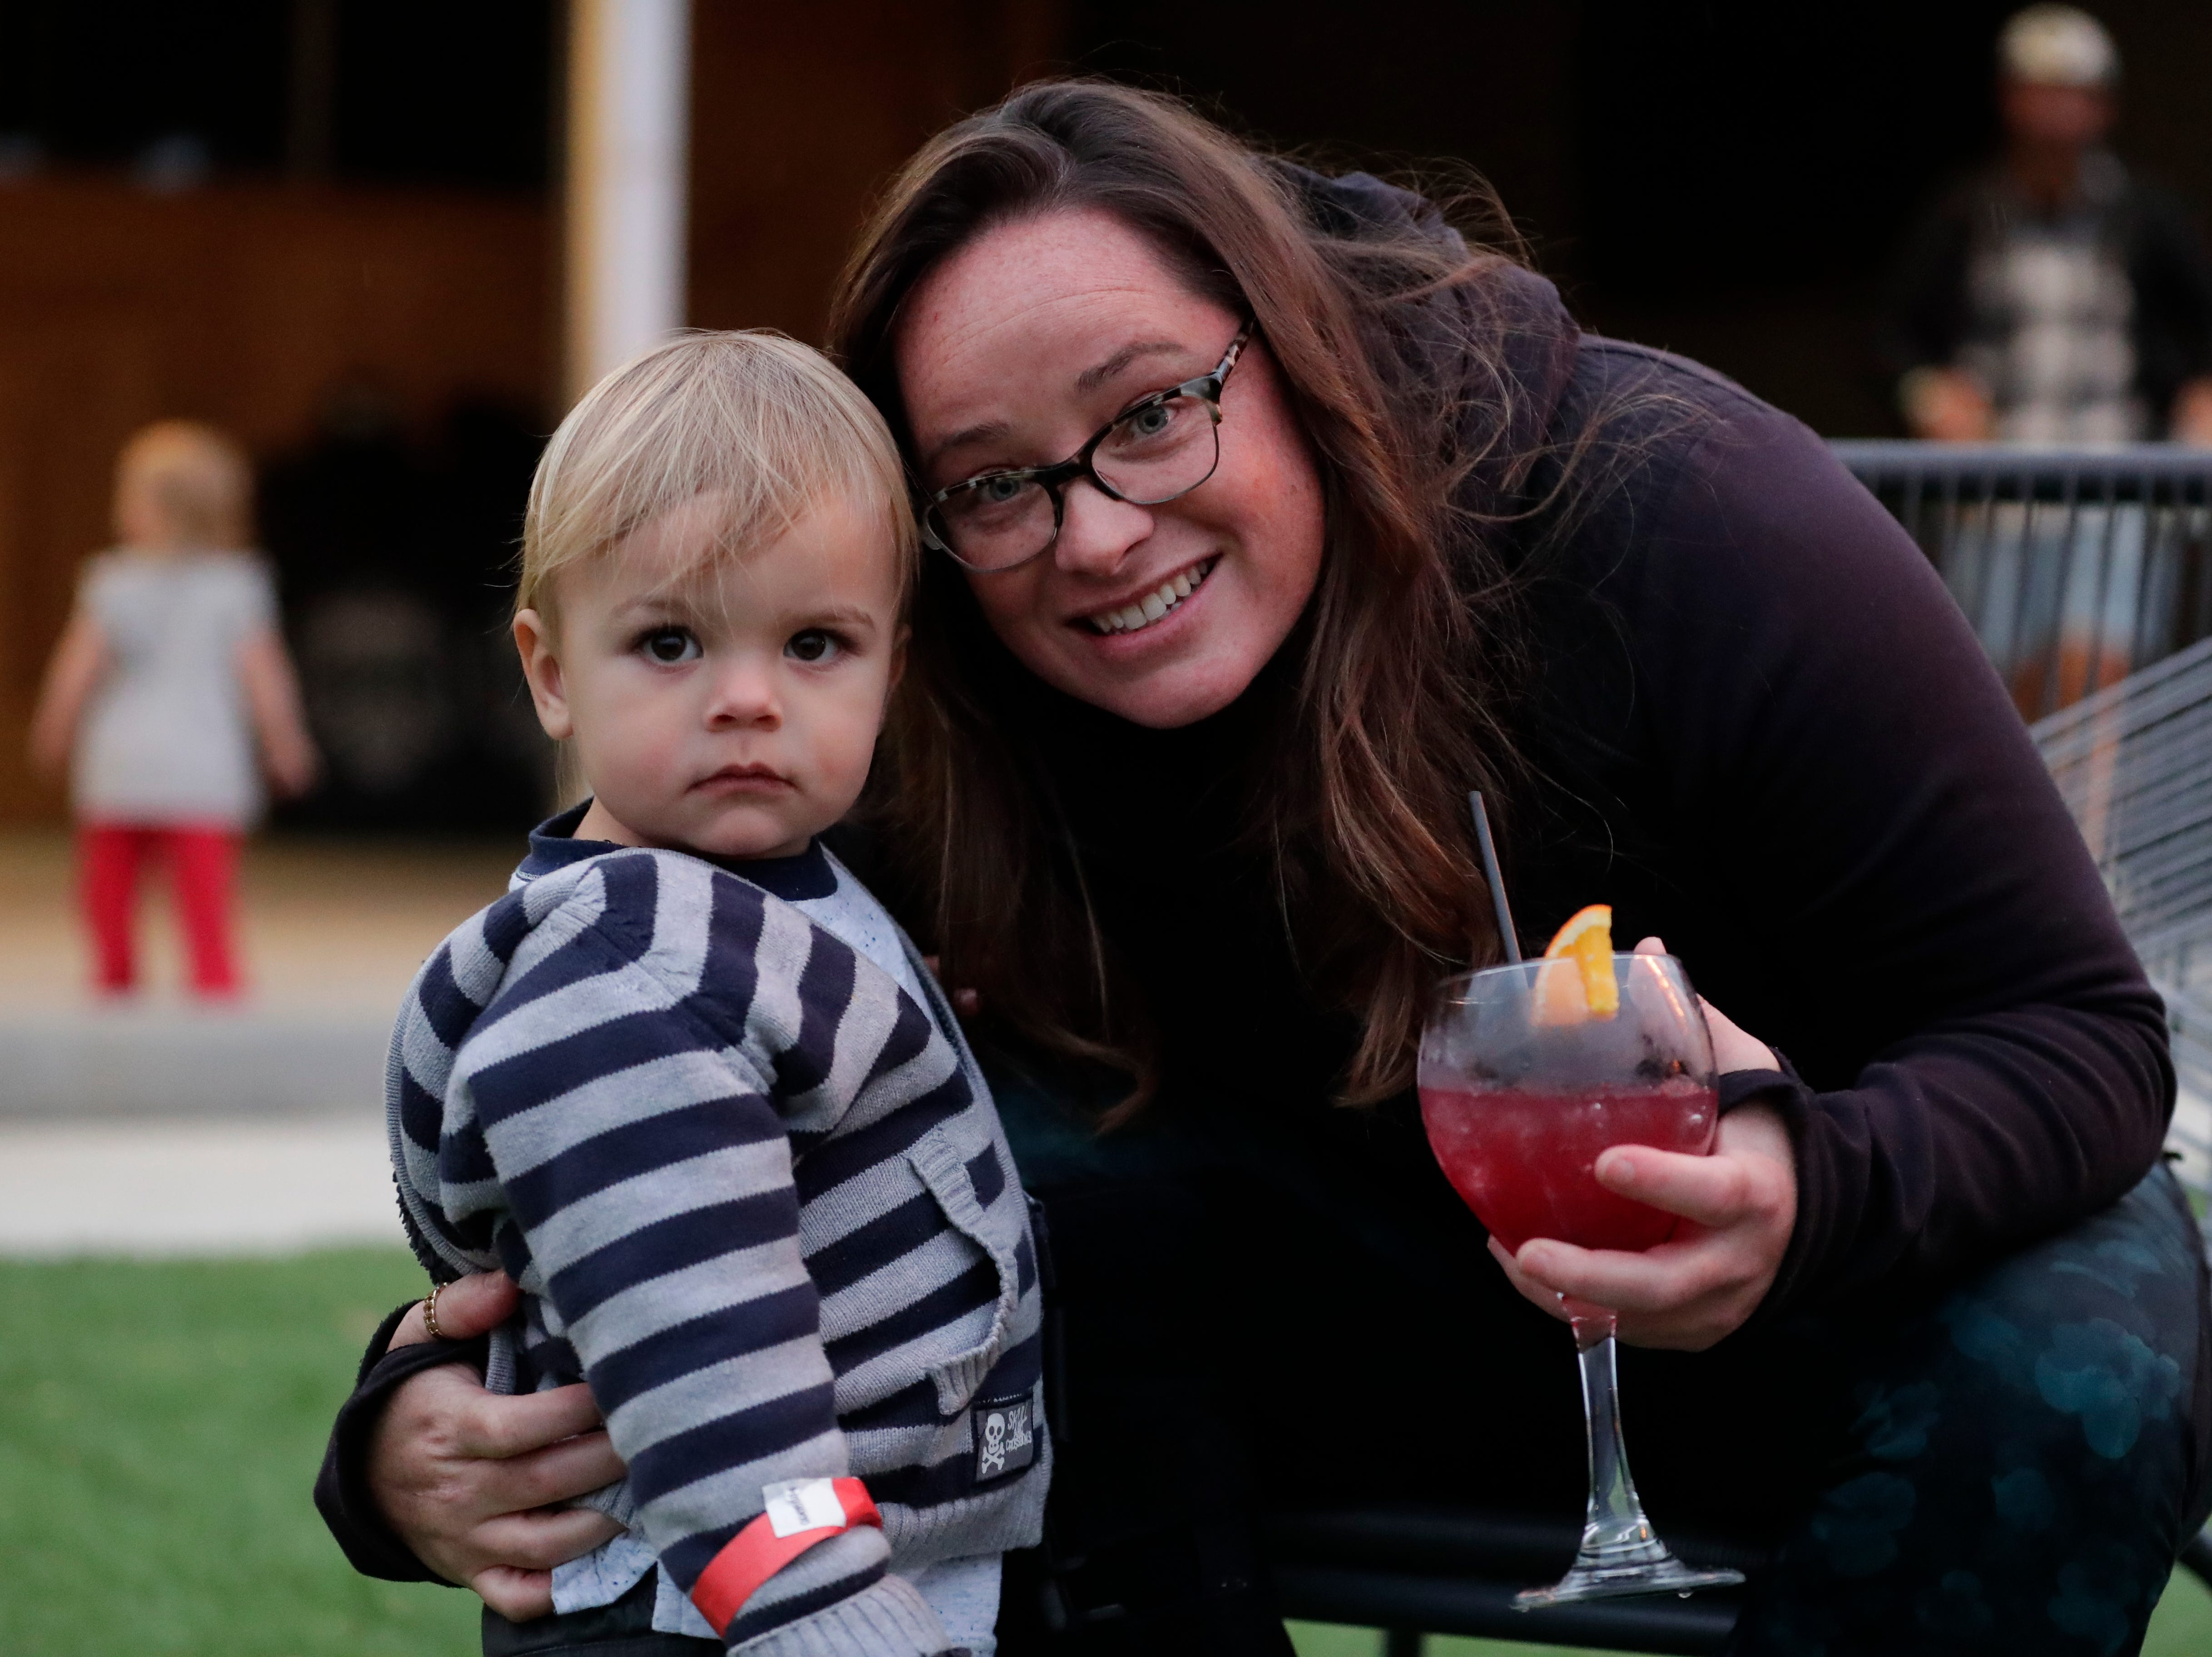 Amanda Coble poses for a photo with her nephew, Wilder Coble in the outdoor area of the new Proof Brewery during the brewery's soft opening, Friday, Feb. 1, 2019.